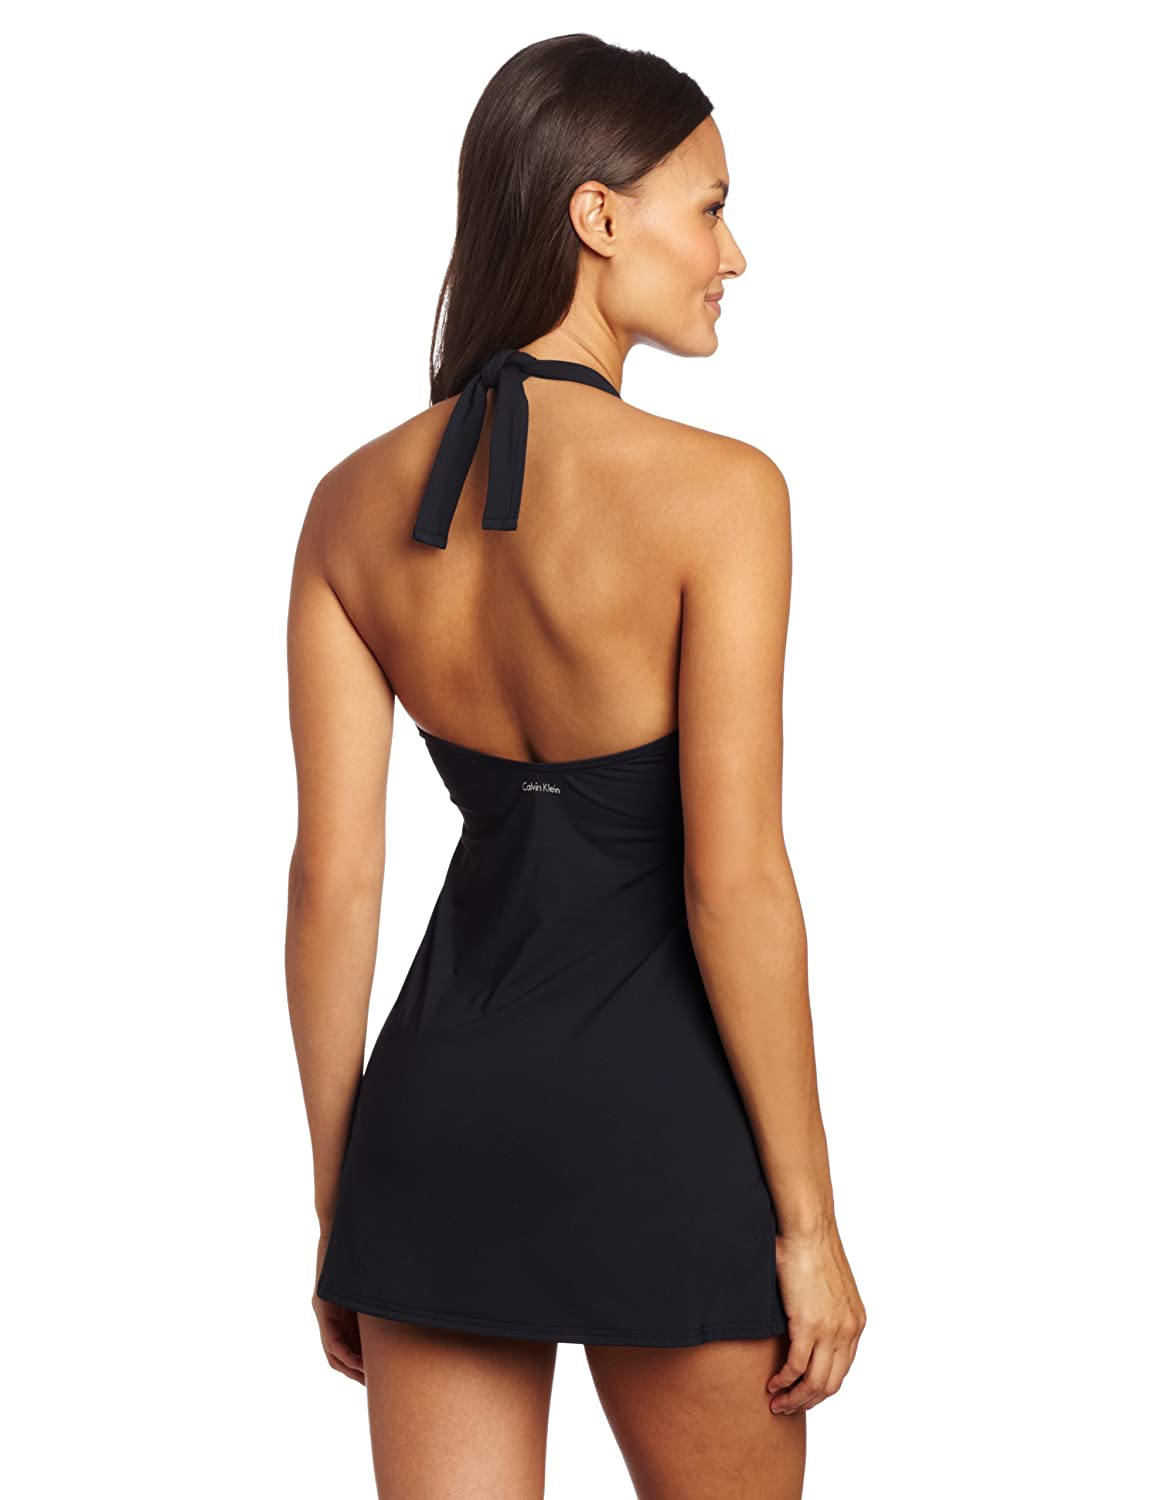 4360cd4858 Calvin Klein Women's Crossover Swim Dress at Amazon Women's Clothing store:  Fashion One Piece Swimsuits